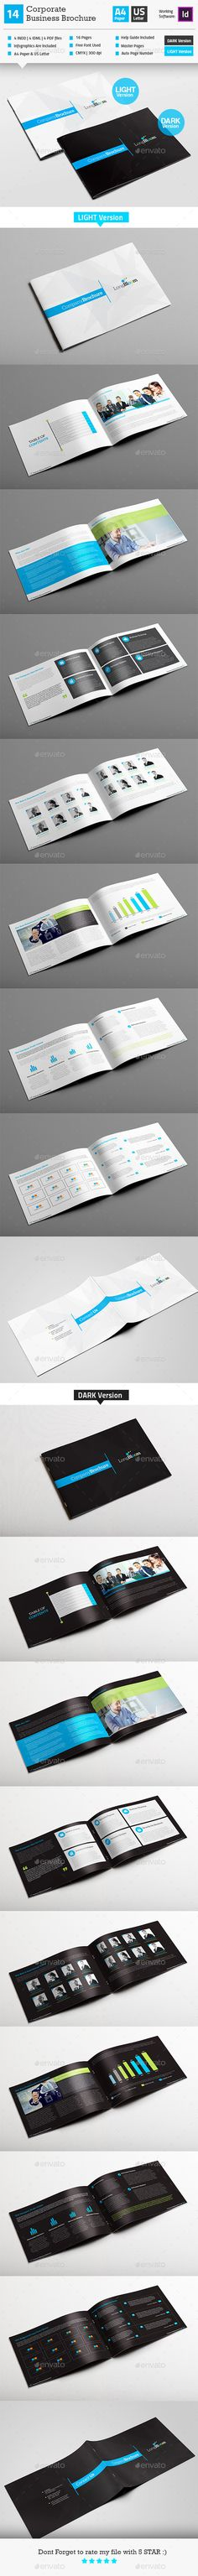 Corporate Business Brochure InDesign Layout Template #design Download: http://graphicriver.net/item/corporate-business-brochure_indesign-layout_v14/12428258?ref=ksioks